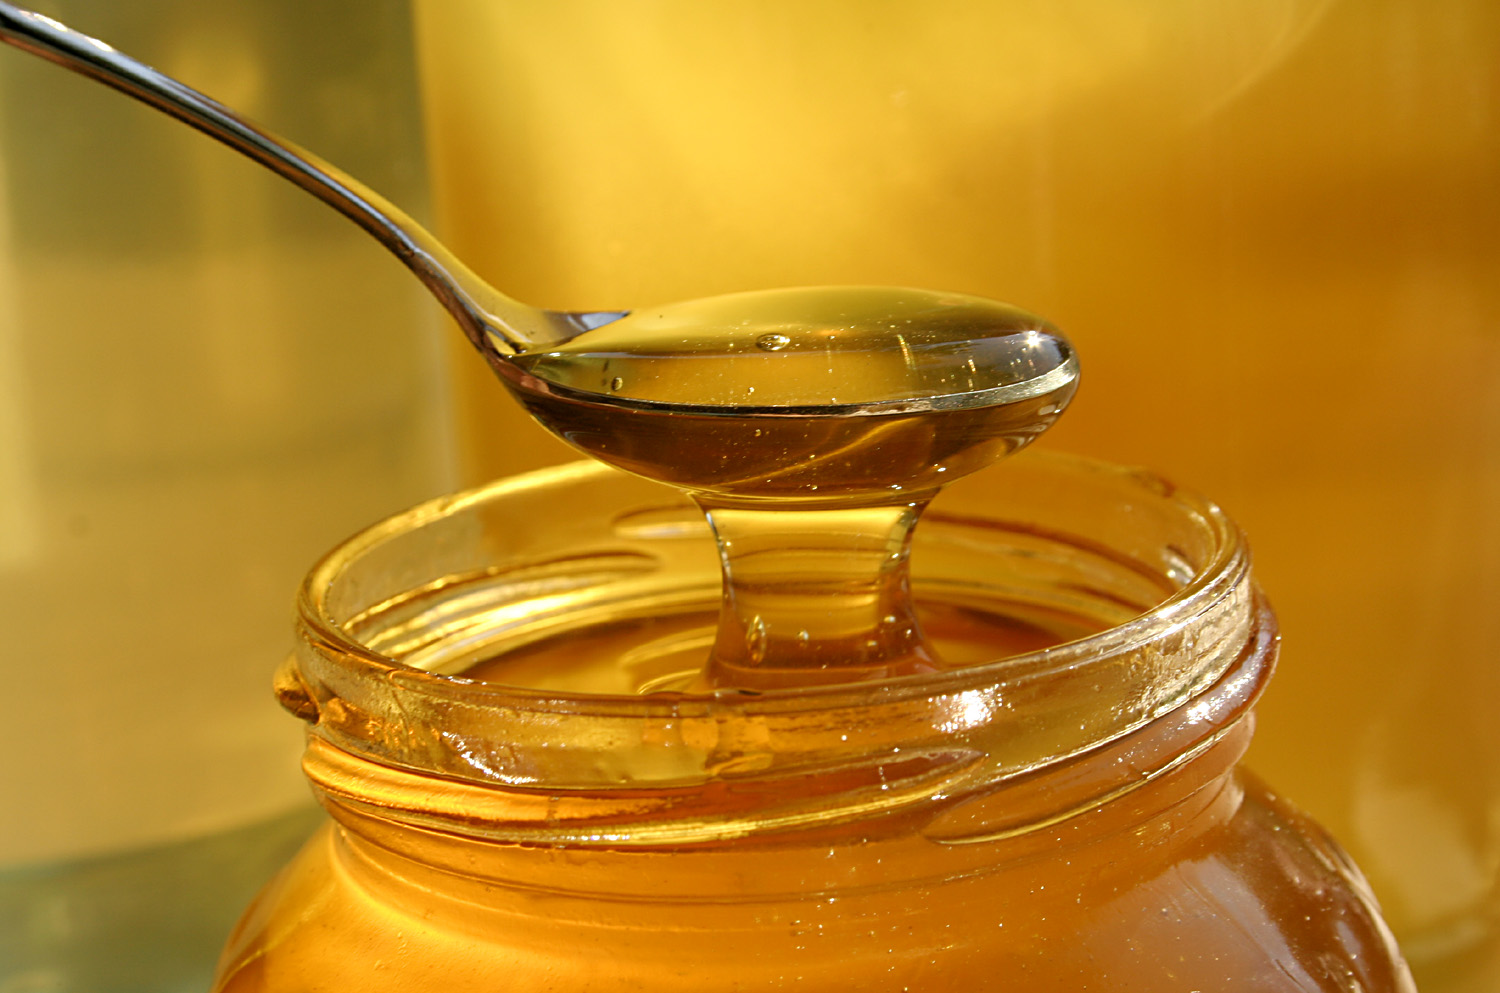 2 tablespoons of raw honey